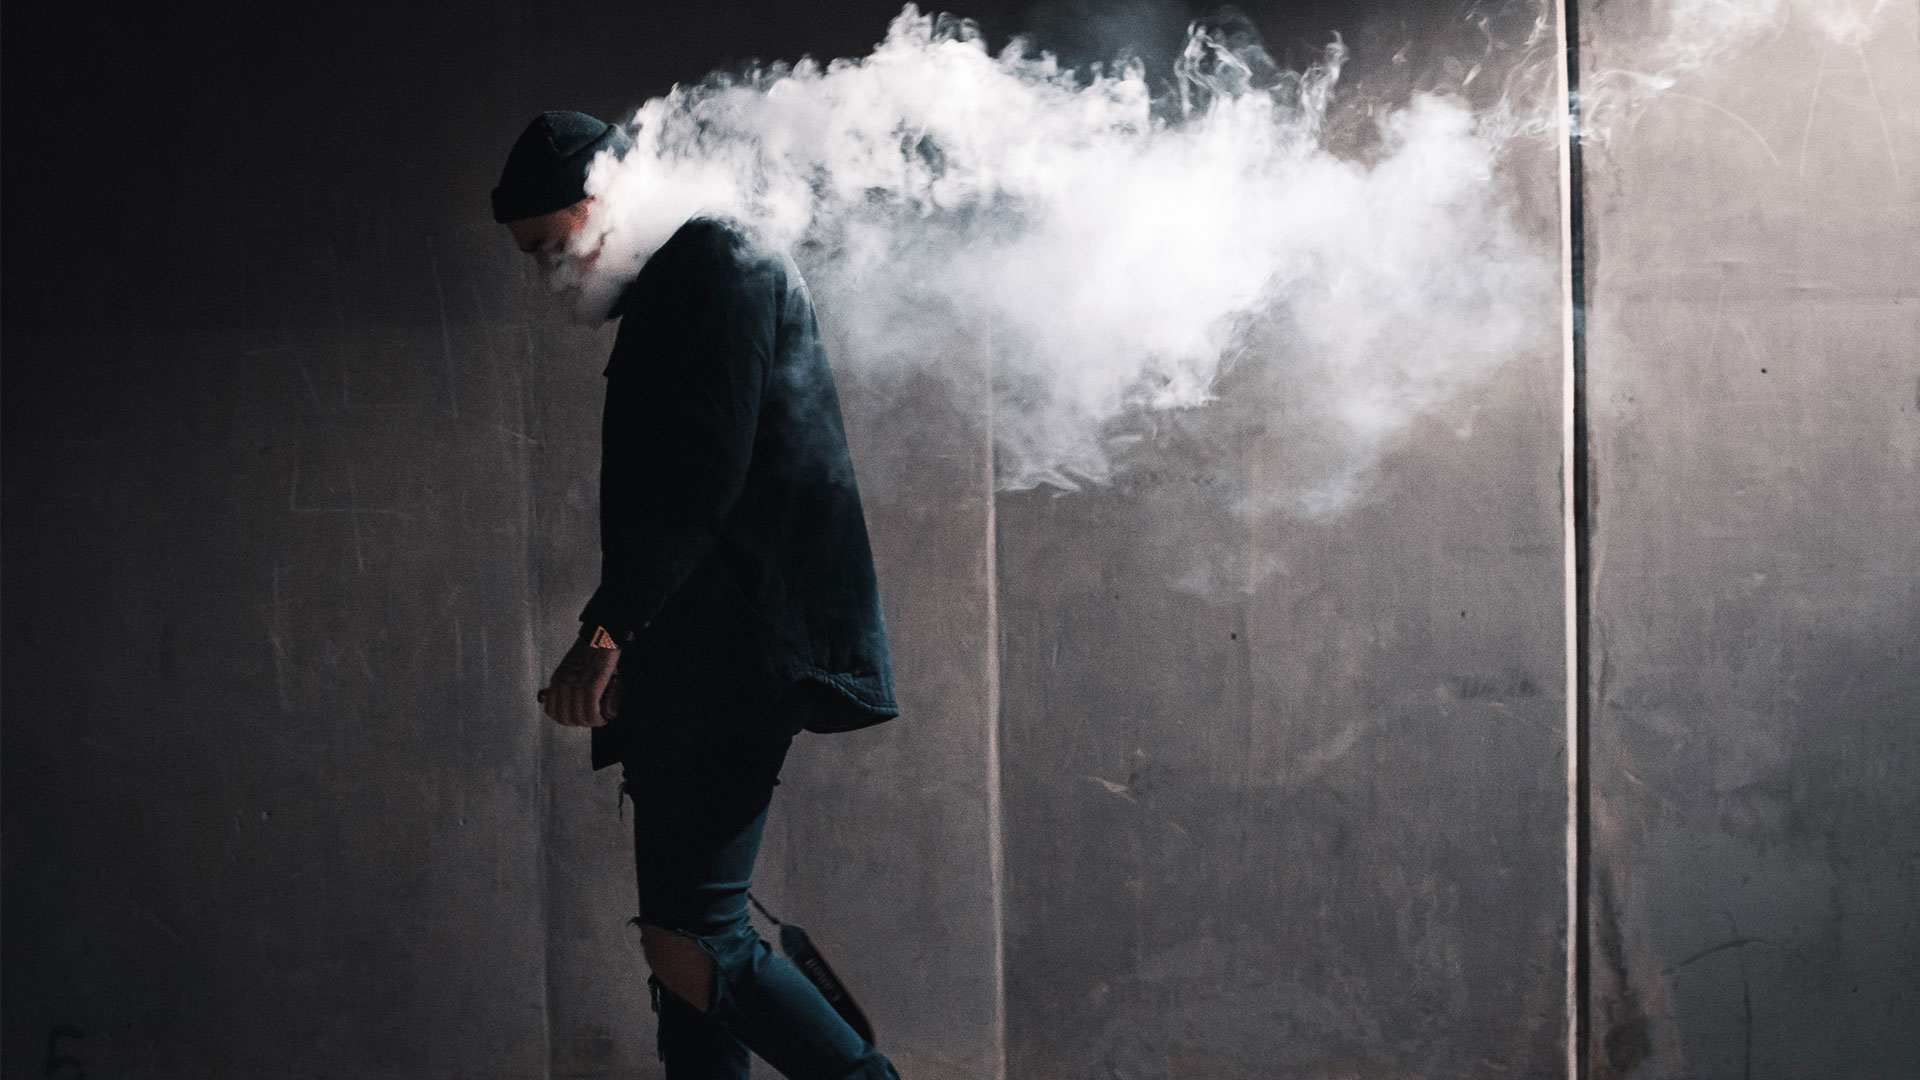 Smoking And Vaping Could Be Banned Throughout The CBD Under New Plan 3